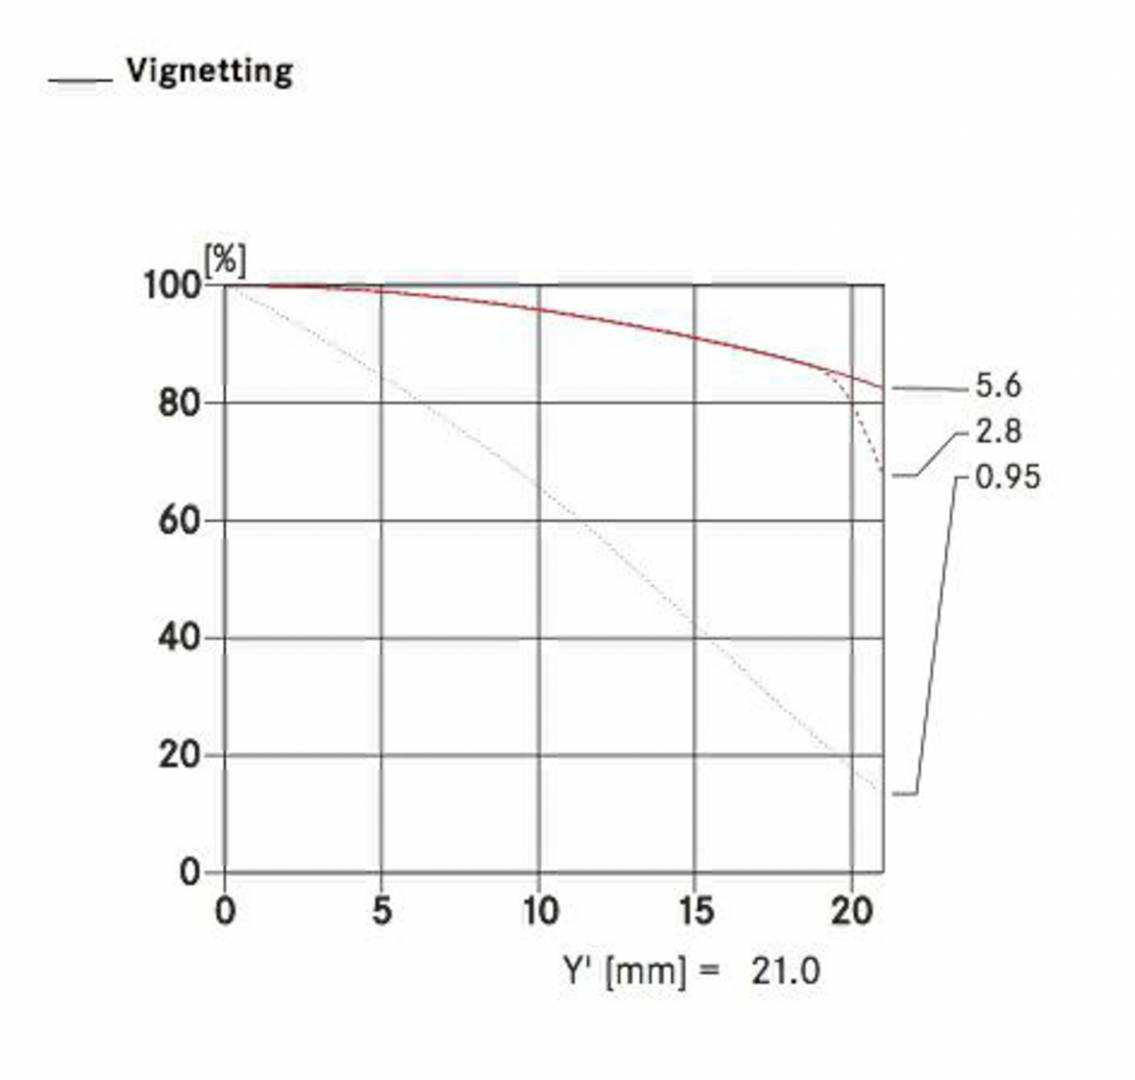 """Noctilux """"vignetting"""" data from Leica's spec sheet for the Noctilux 50mm f/0.95"""